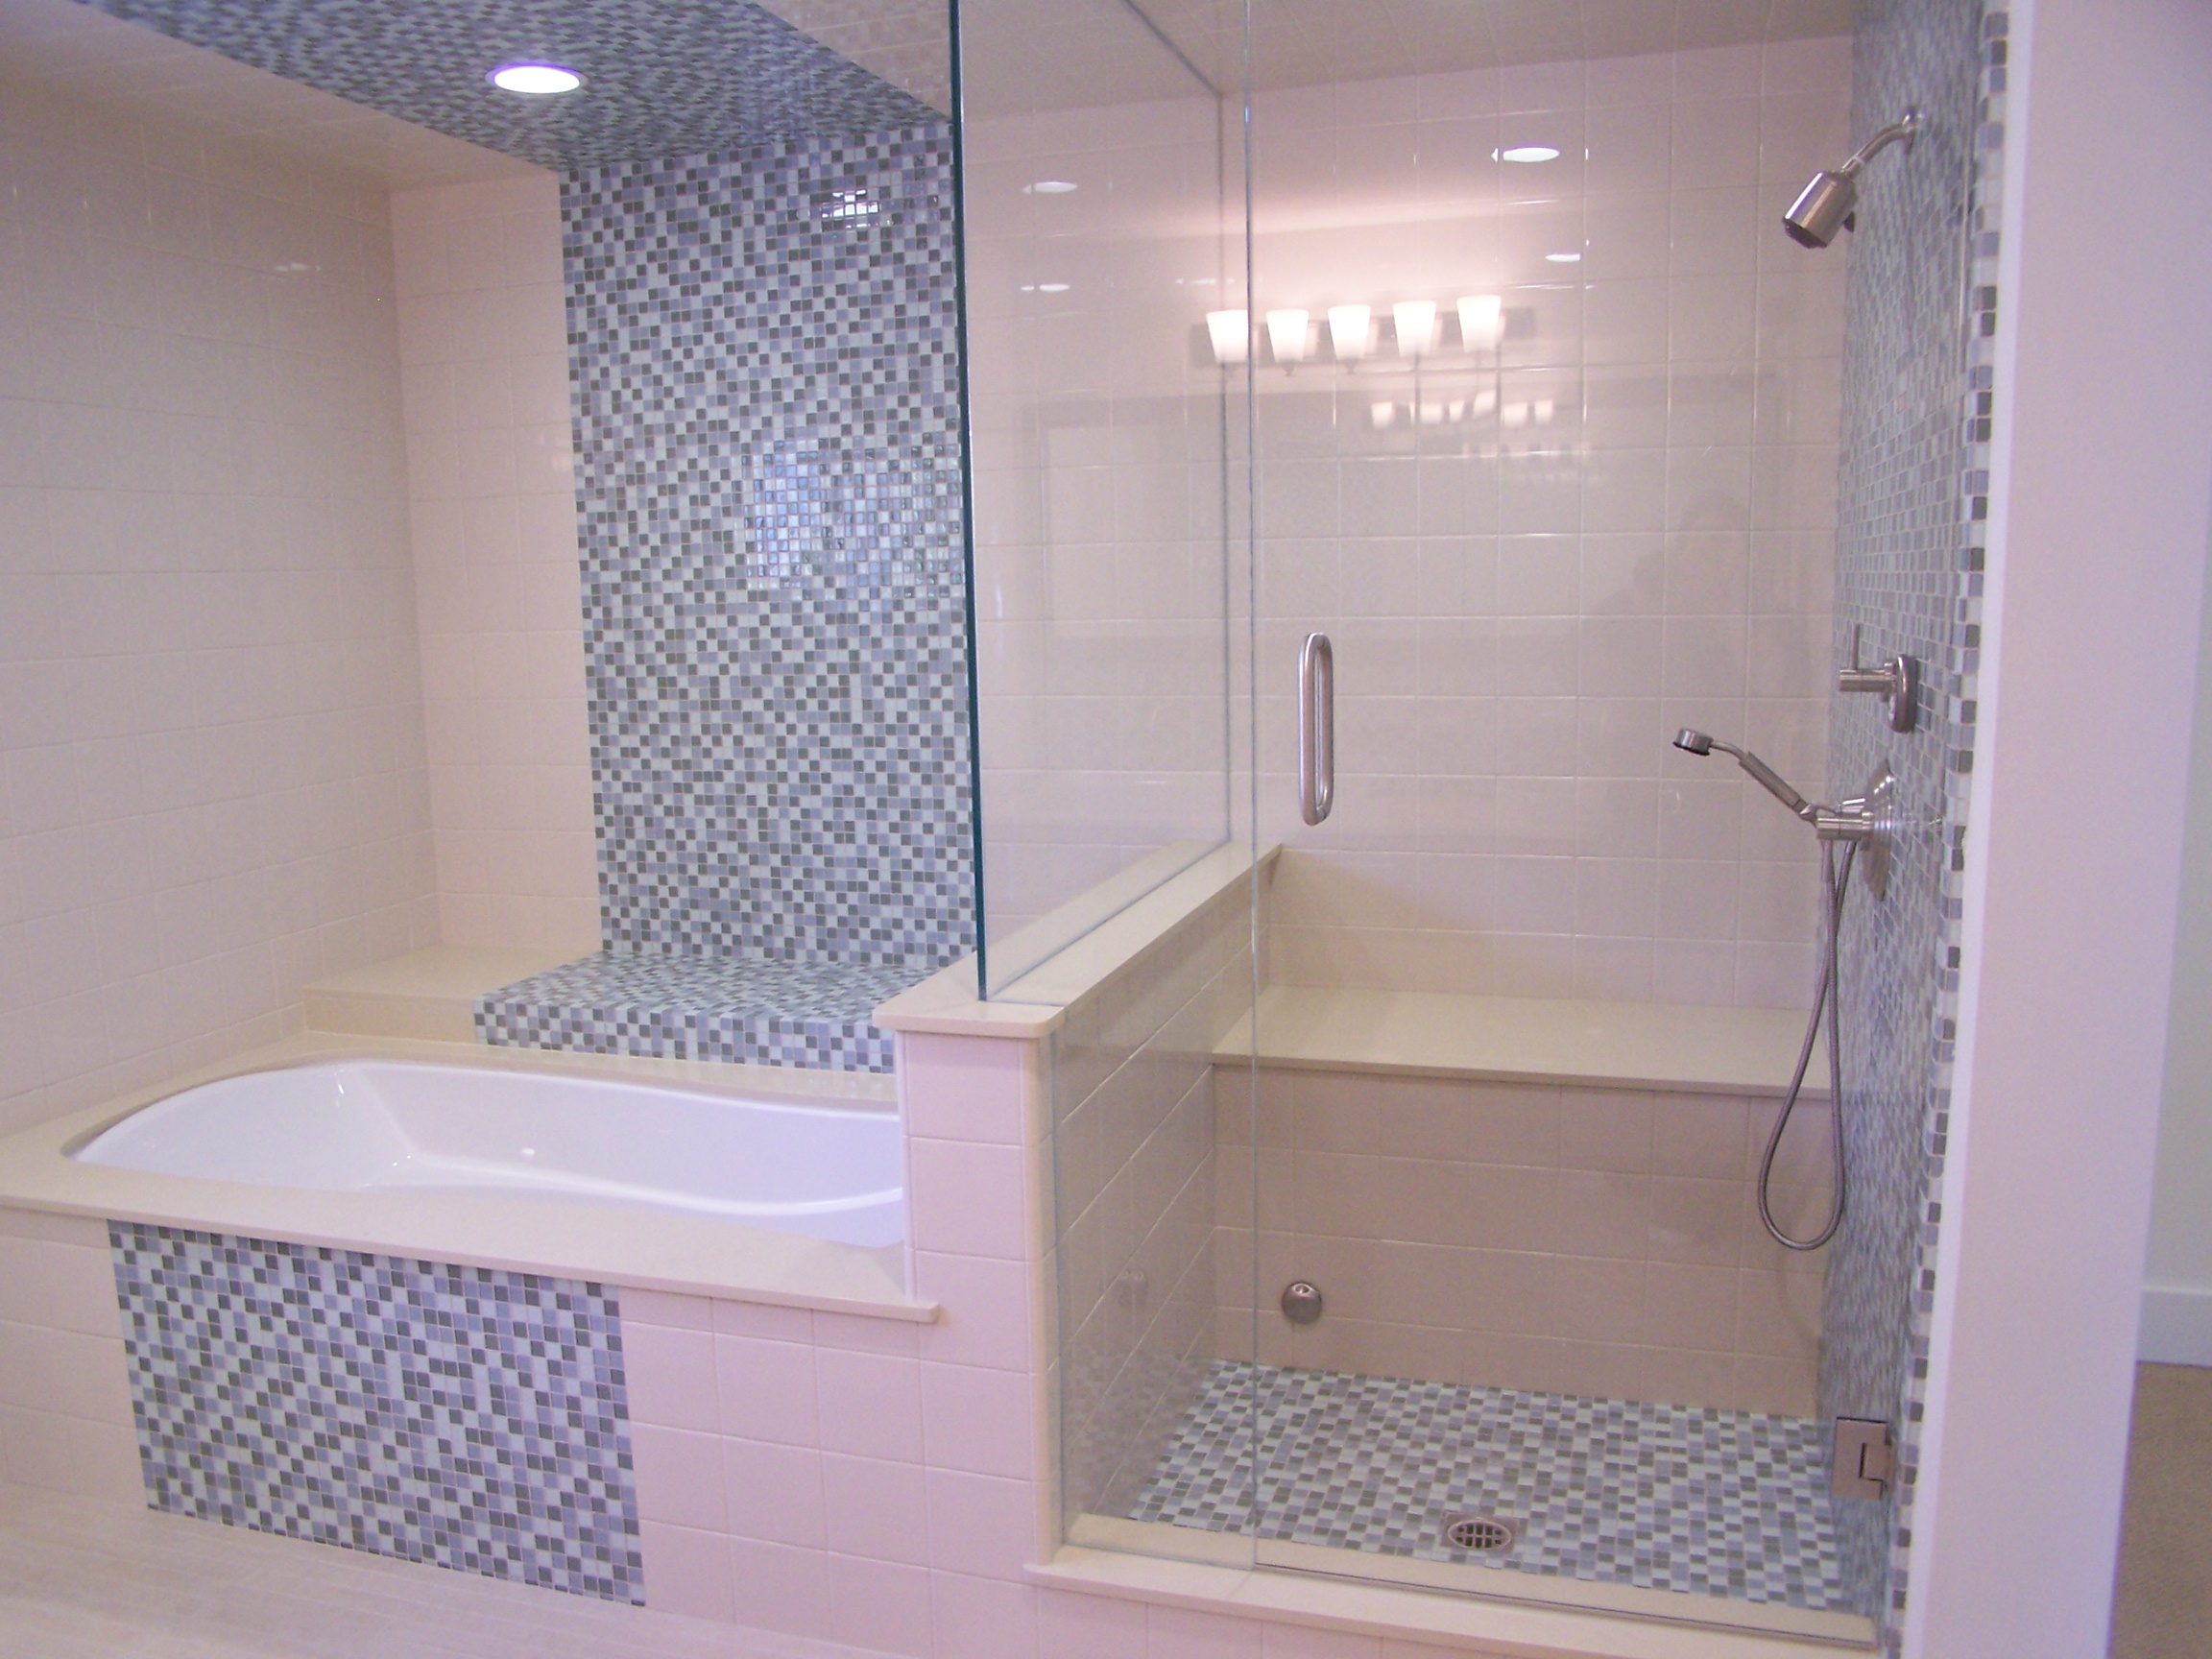 Fascinating Bathroom Wall Tiles Design Of Full Size Of Decoration Ideas With Pretty